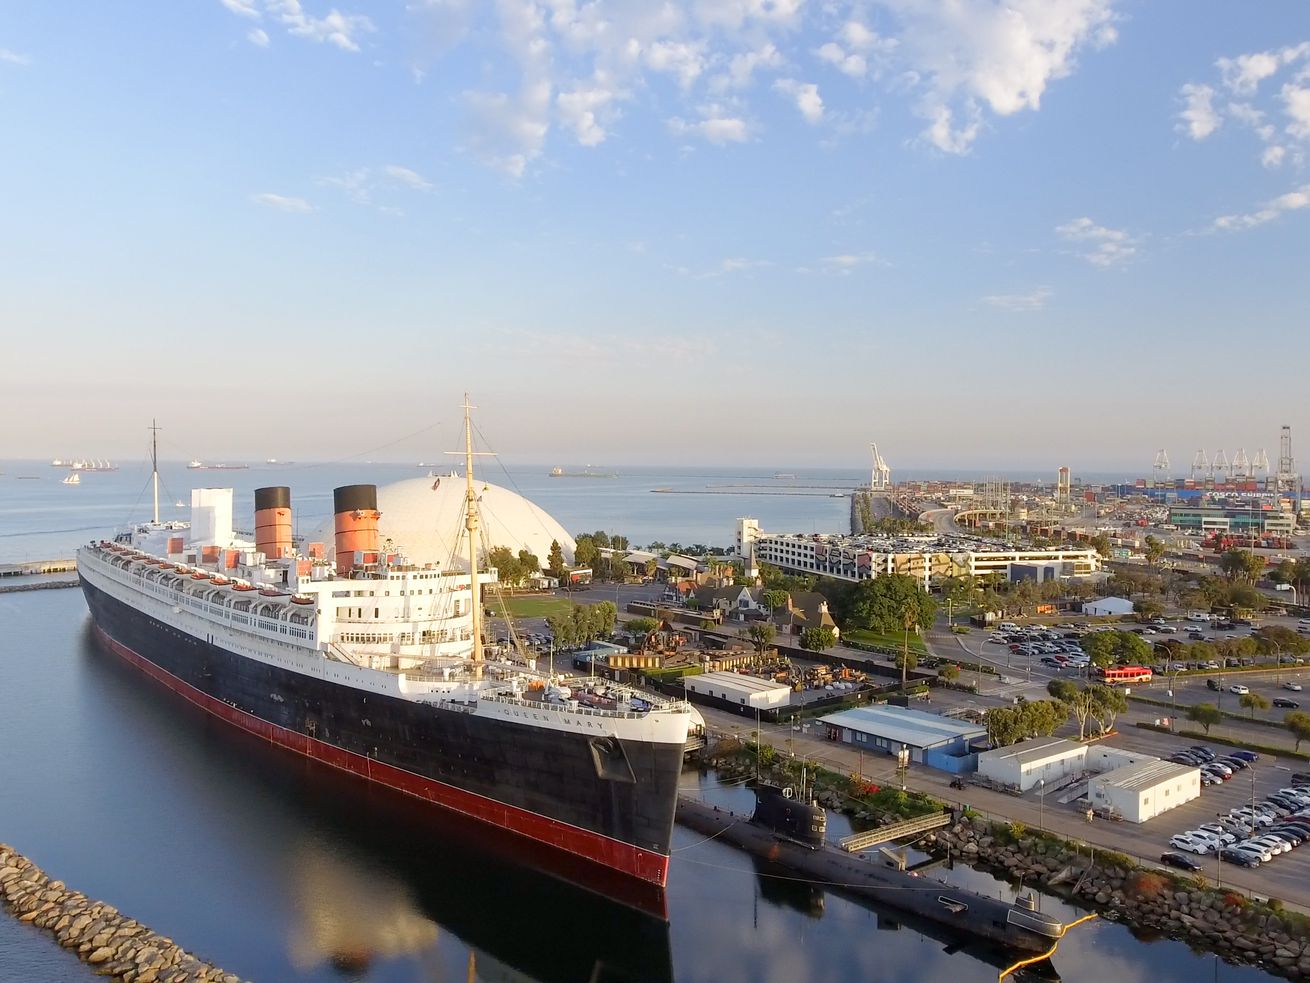 Queen Mary operator Urban Commons is planning a new entertainment complex alongside the ship.